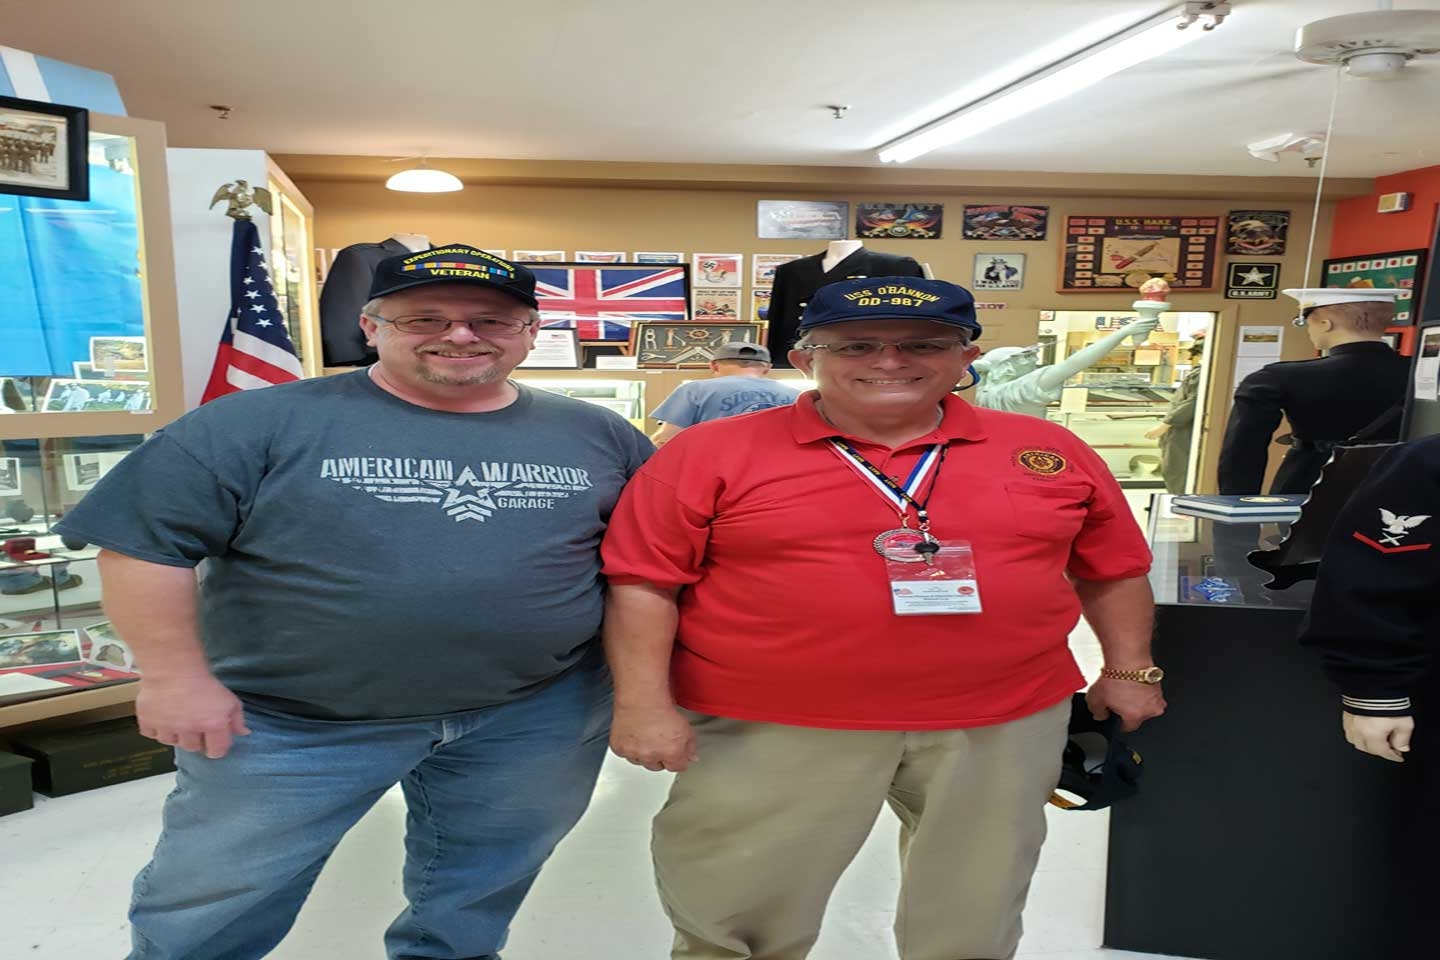 Daniel met this man at a Veteran's Museum and Education Center in Daytona Beach, FL. The gentleman served on the same ship as Kevin as a Plank Owner on the USS O'Bannon DD-987 from 1979-1984.